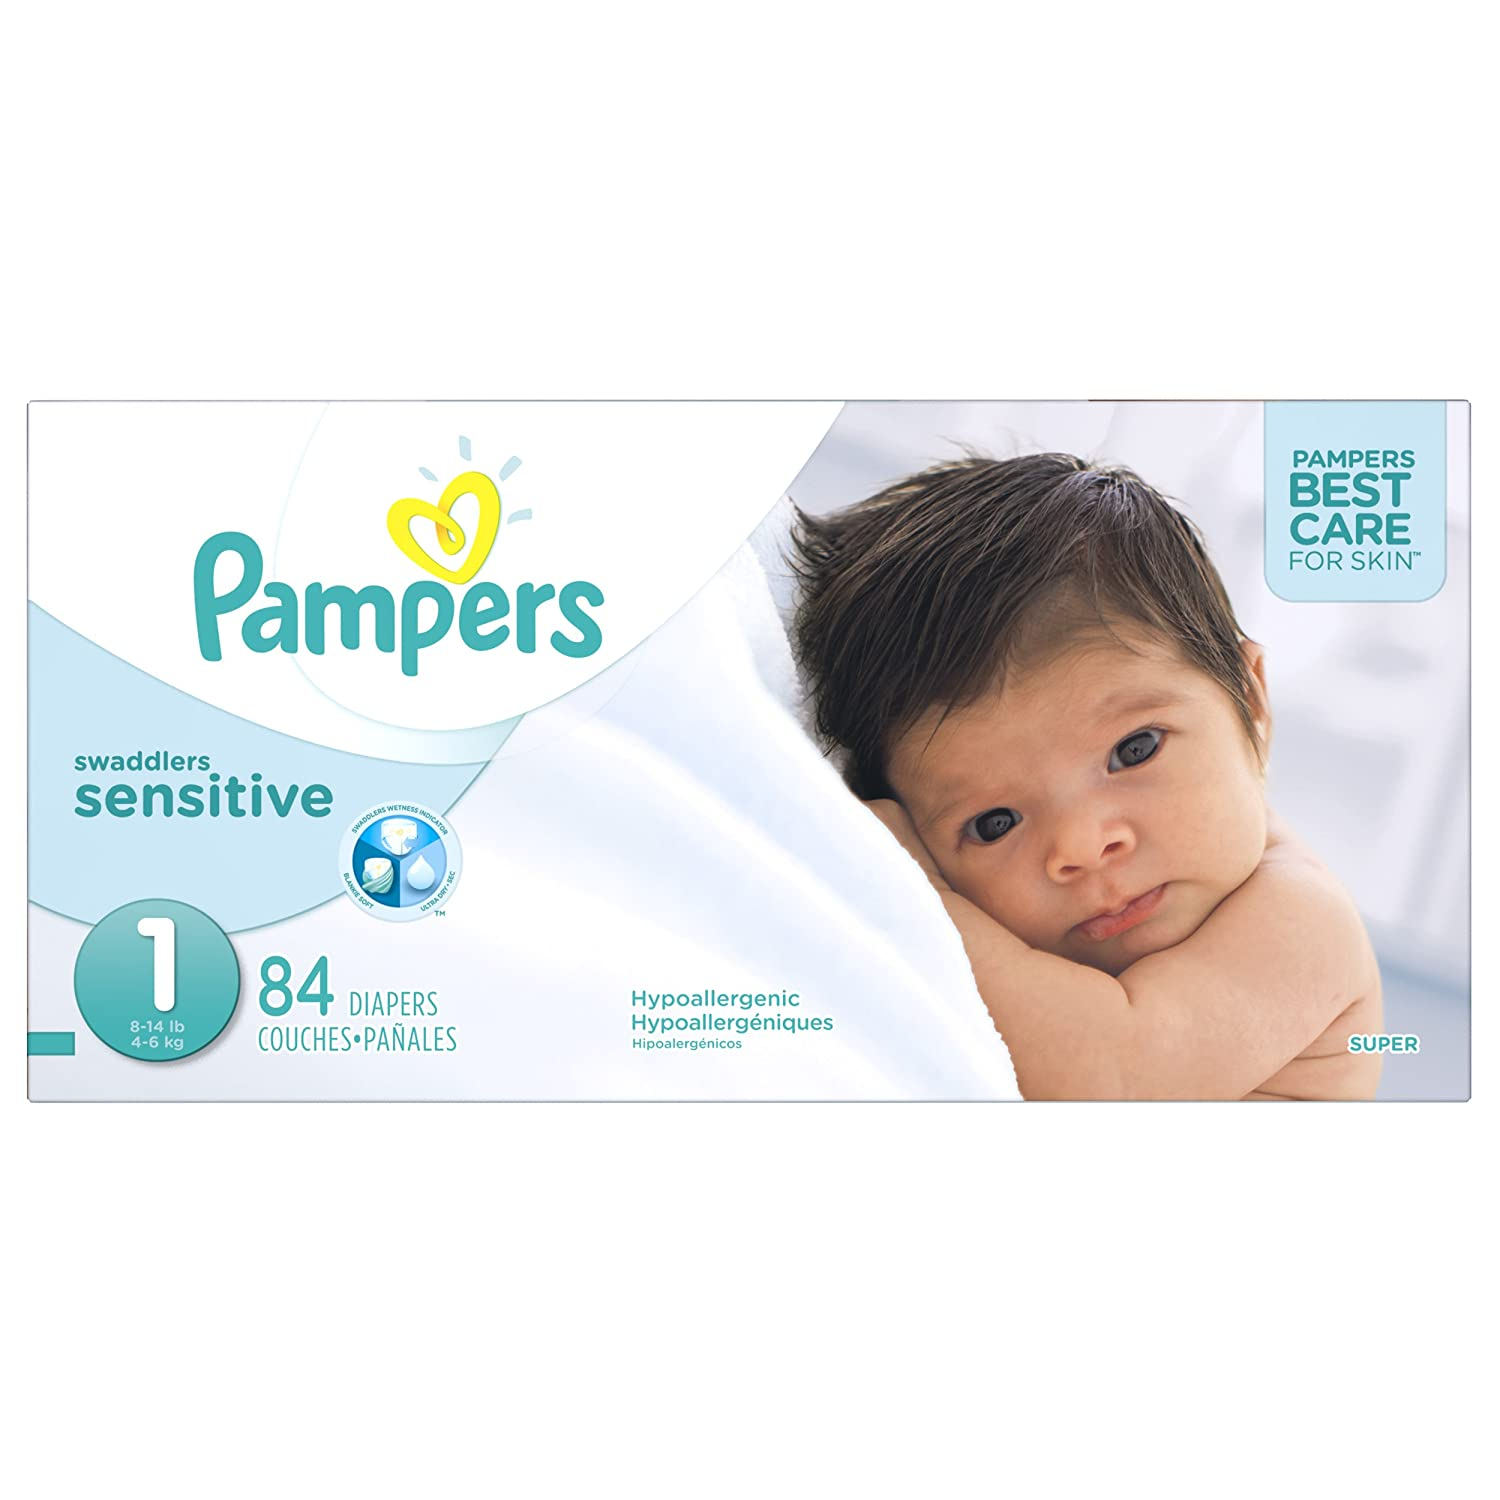 Pampers Swaddlers Sensitive Disposable Diapers Newborn Size 1 (8 14 Lb), 84 Count, Super by Pampers